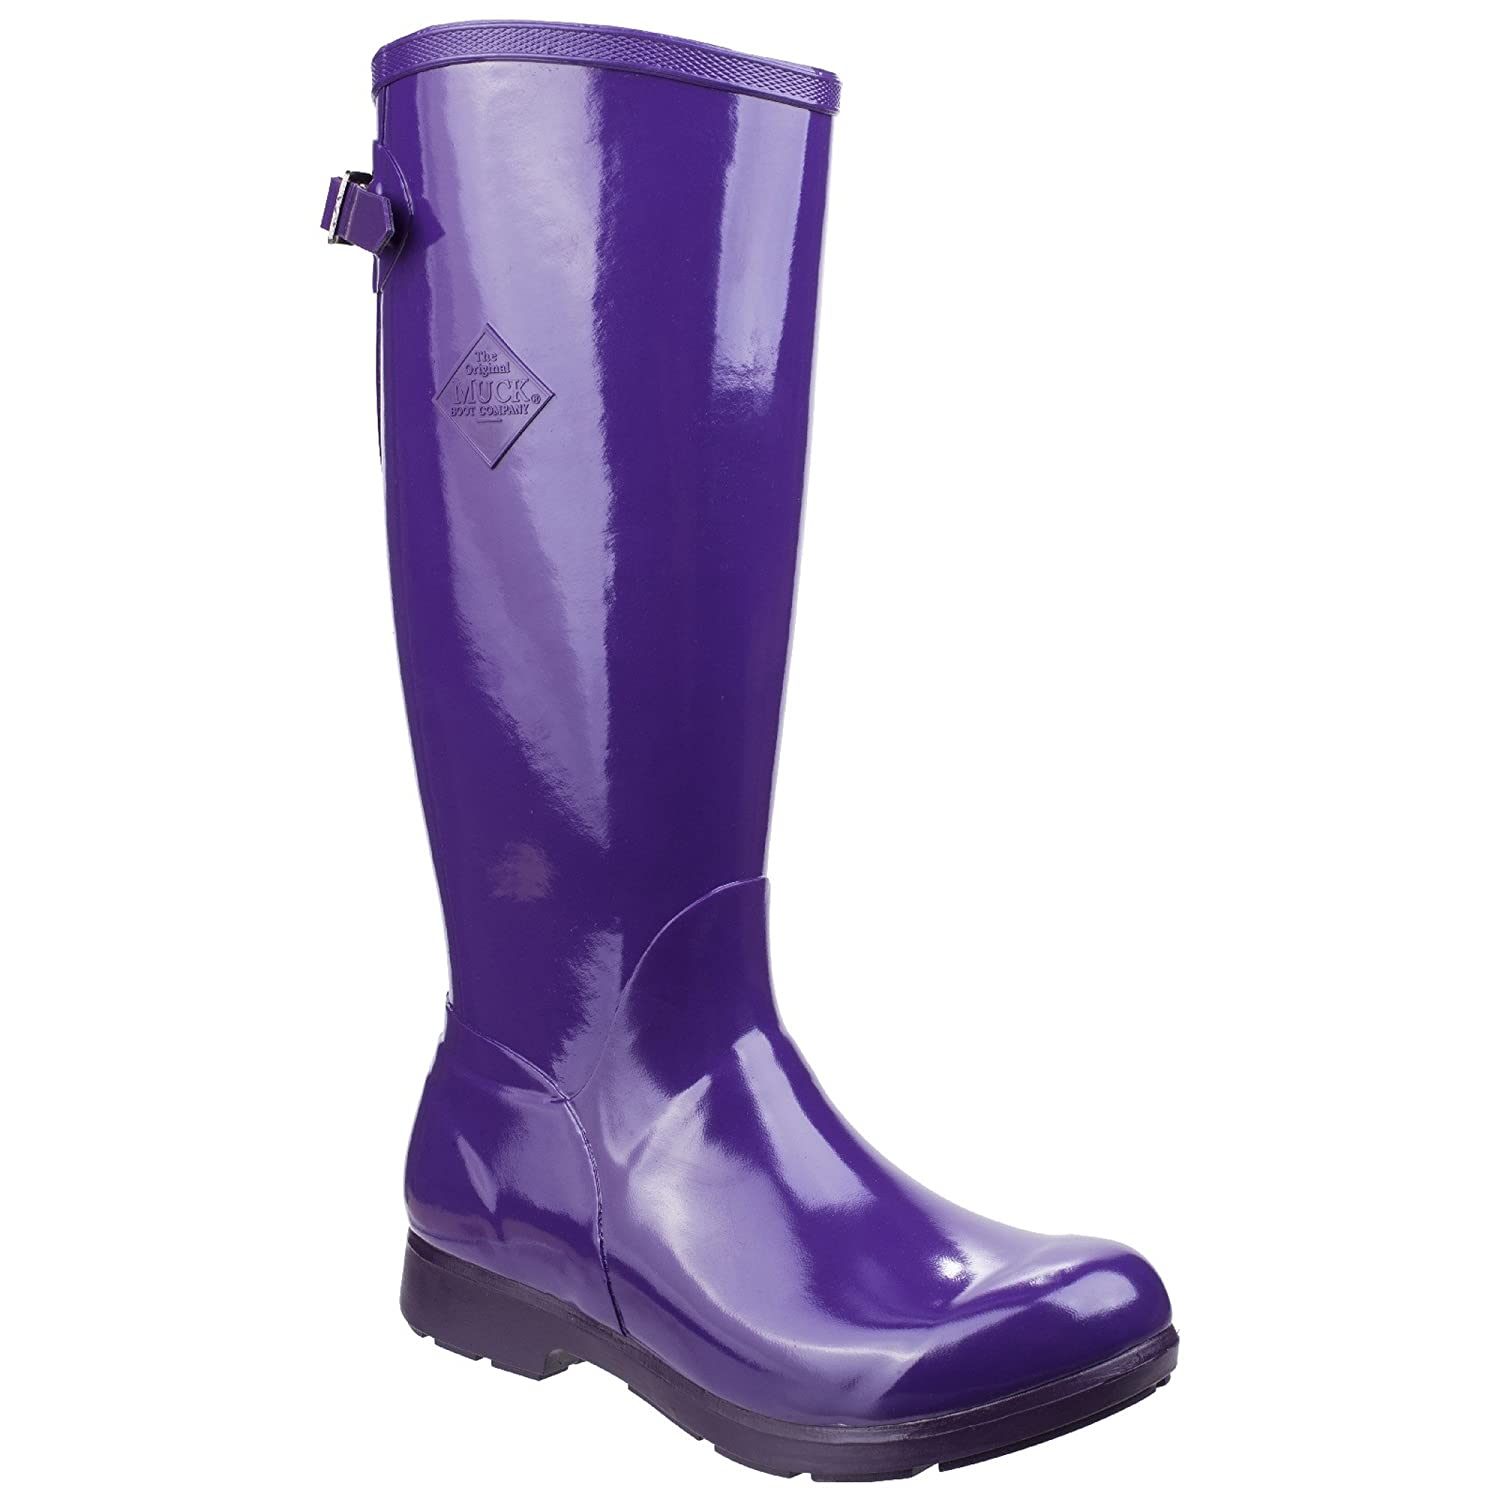 Muck Boot Womens/Ladies Bergen Tall Lightweight Rain Boots B07DBTZGNS 5 M US|Purple